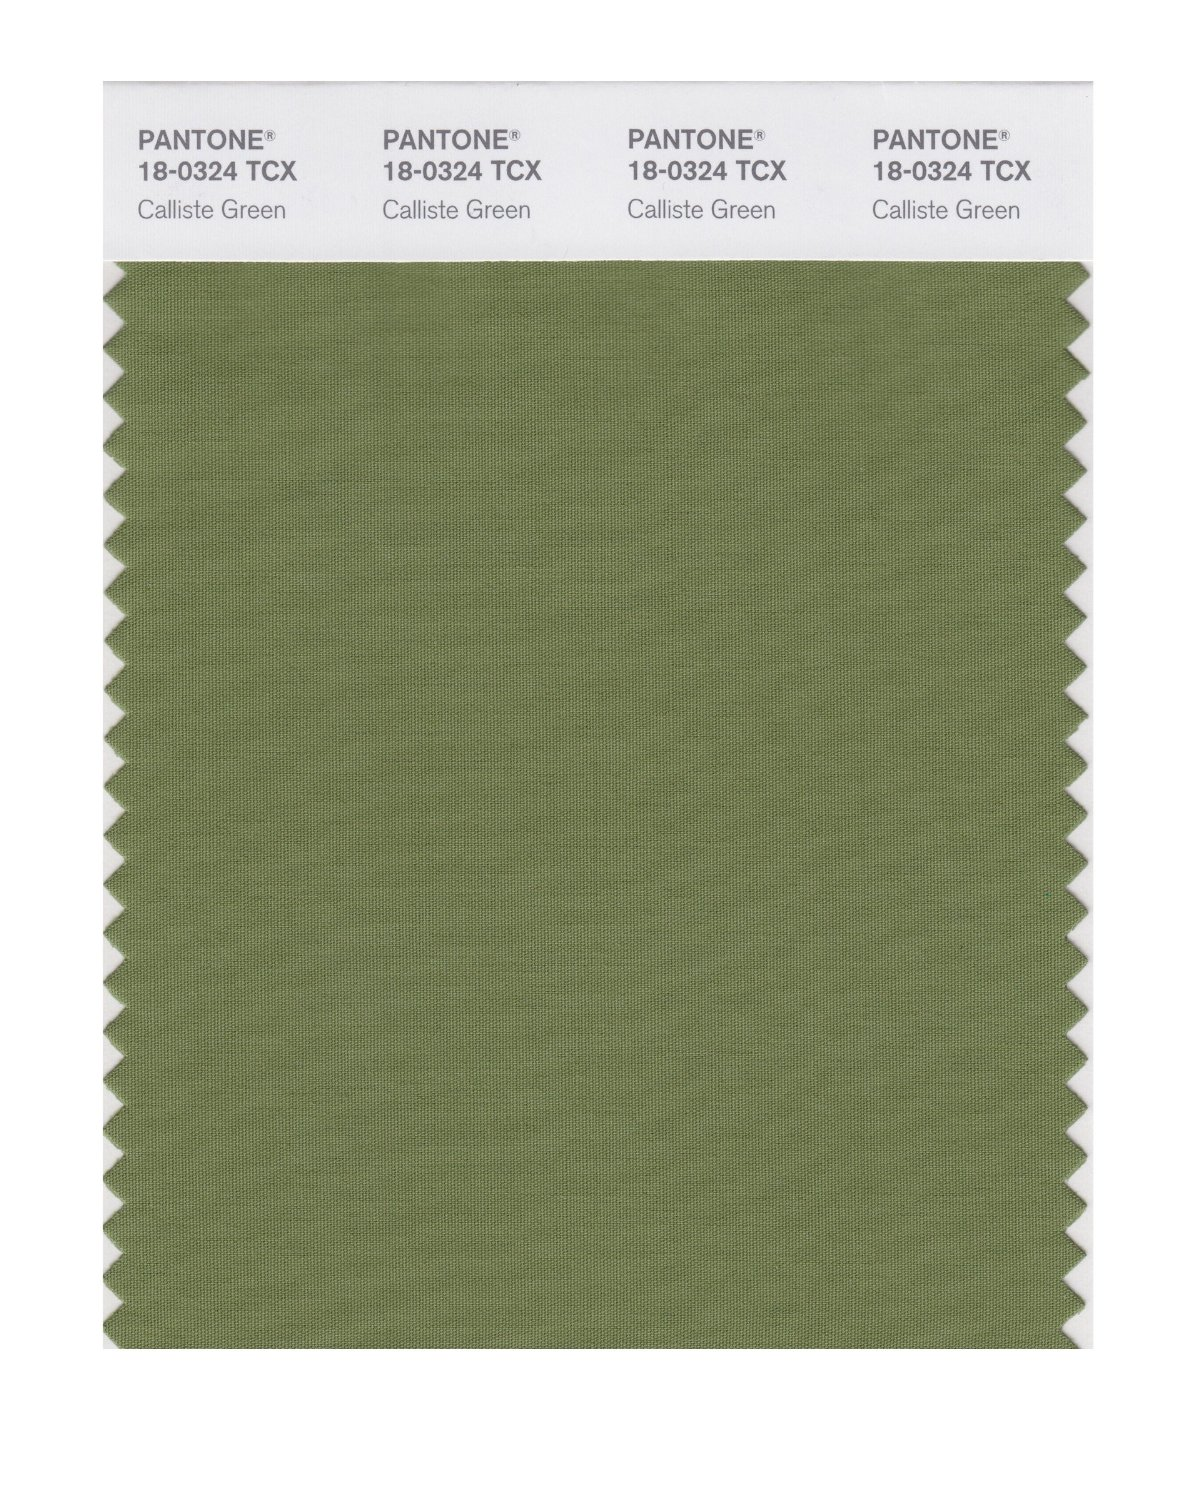 Pantone Smart Swatch 18-0324 Calliste Green